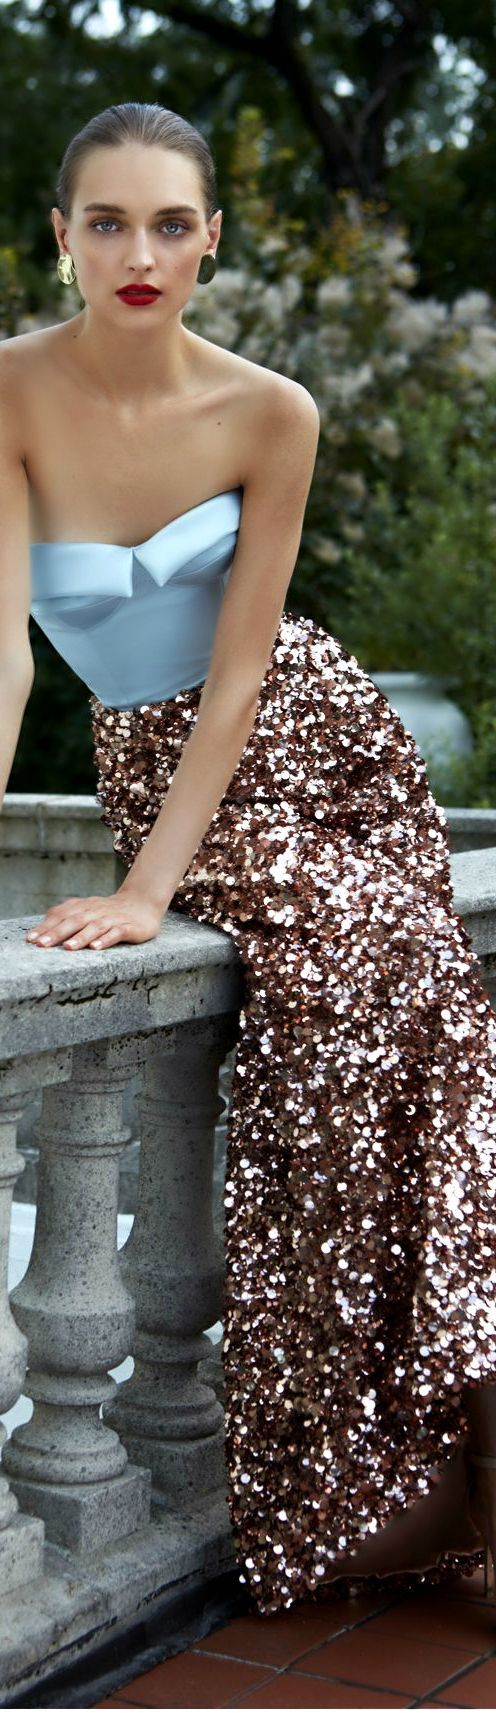 ways how to wear sequin skirt outfit 9